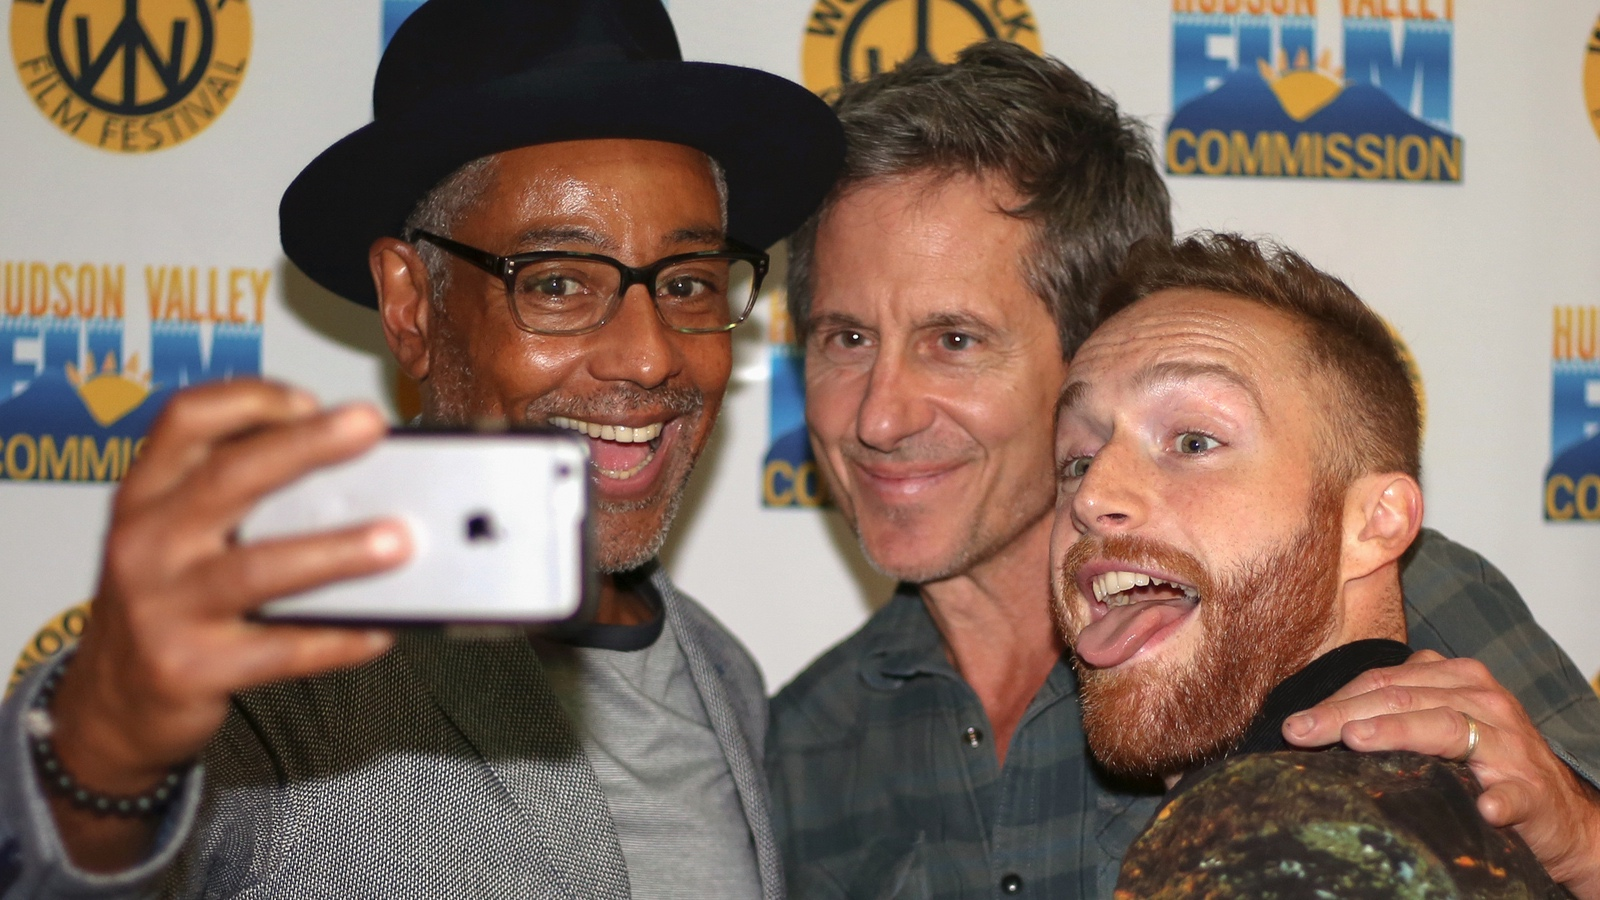 Giancarlo Esposito, Michael Berry and Tim Young after the screening of Stuck at the 2017 Woodstock Film Festival.